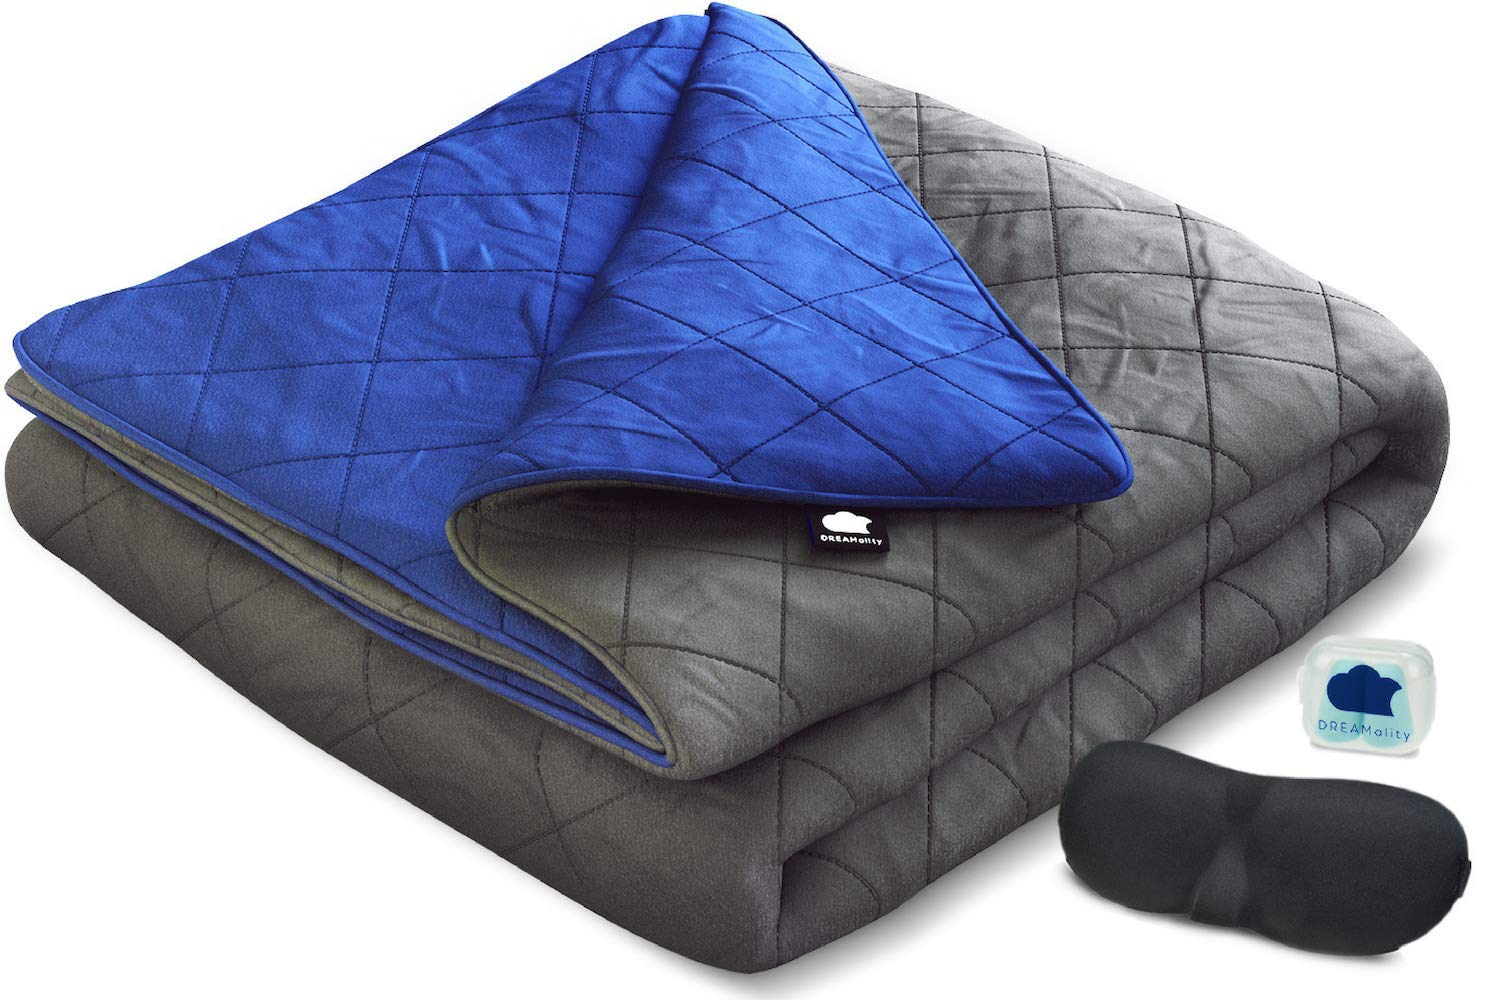 DREAMality Weighted Blanket 20 lbs 60''x80'' with Integrated Cotton Weighted Blanket Cover - Heavy Weighted Blanket for Kids Adult Full Queen Twin Size Comforter - Premium Cooling Weighted Blankets